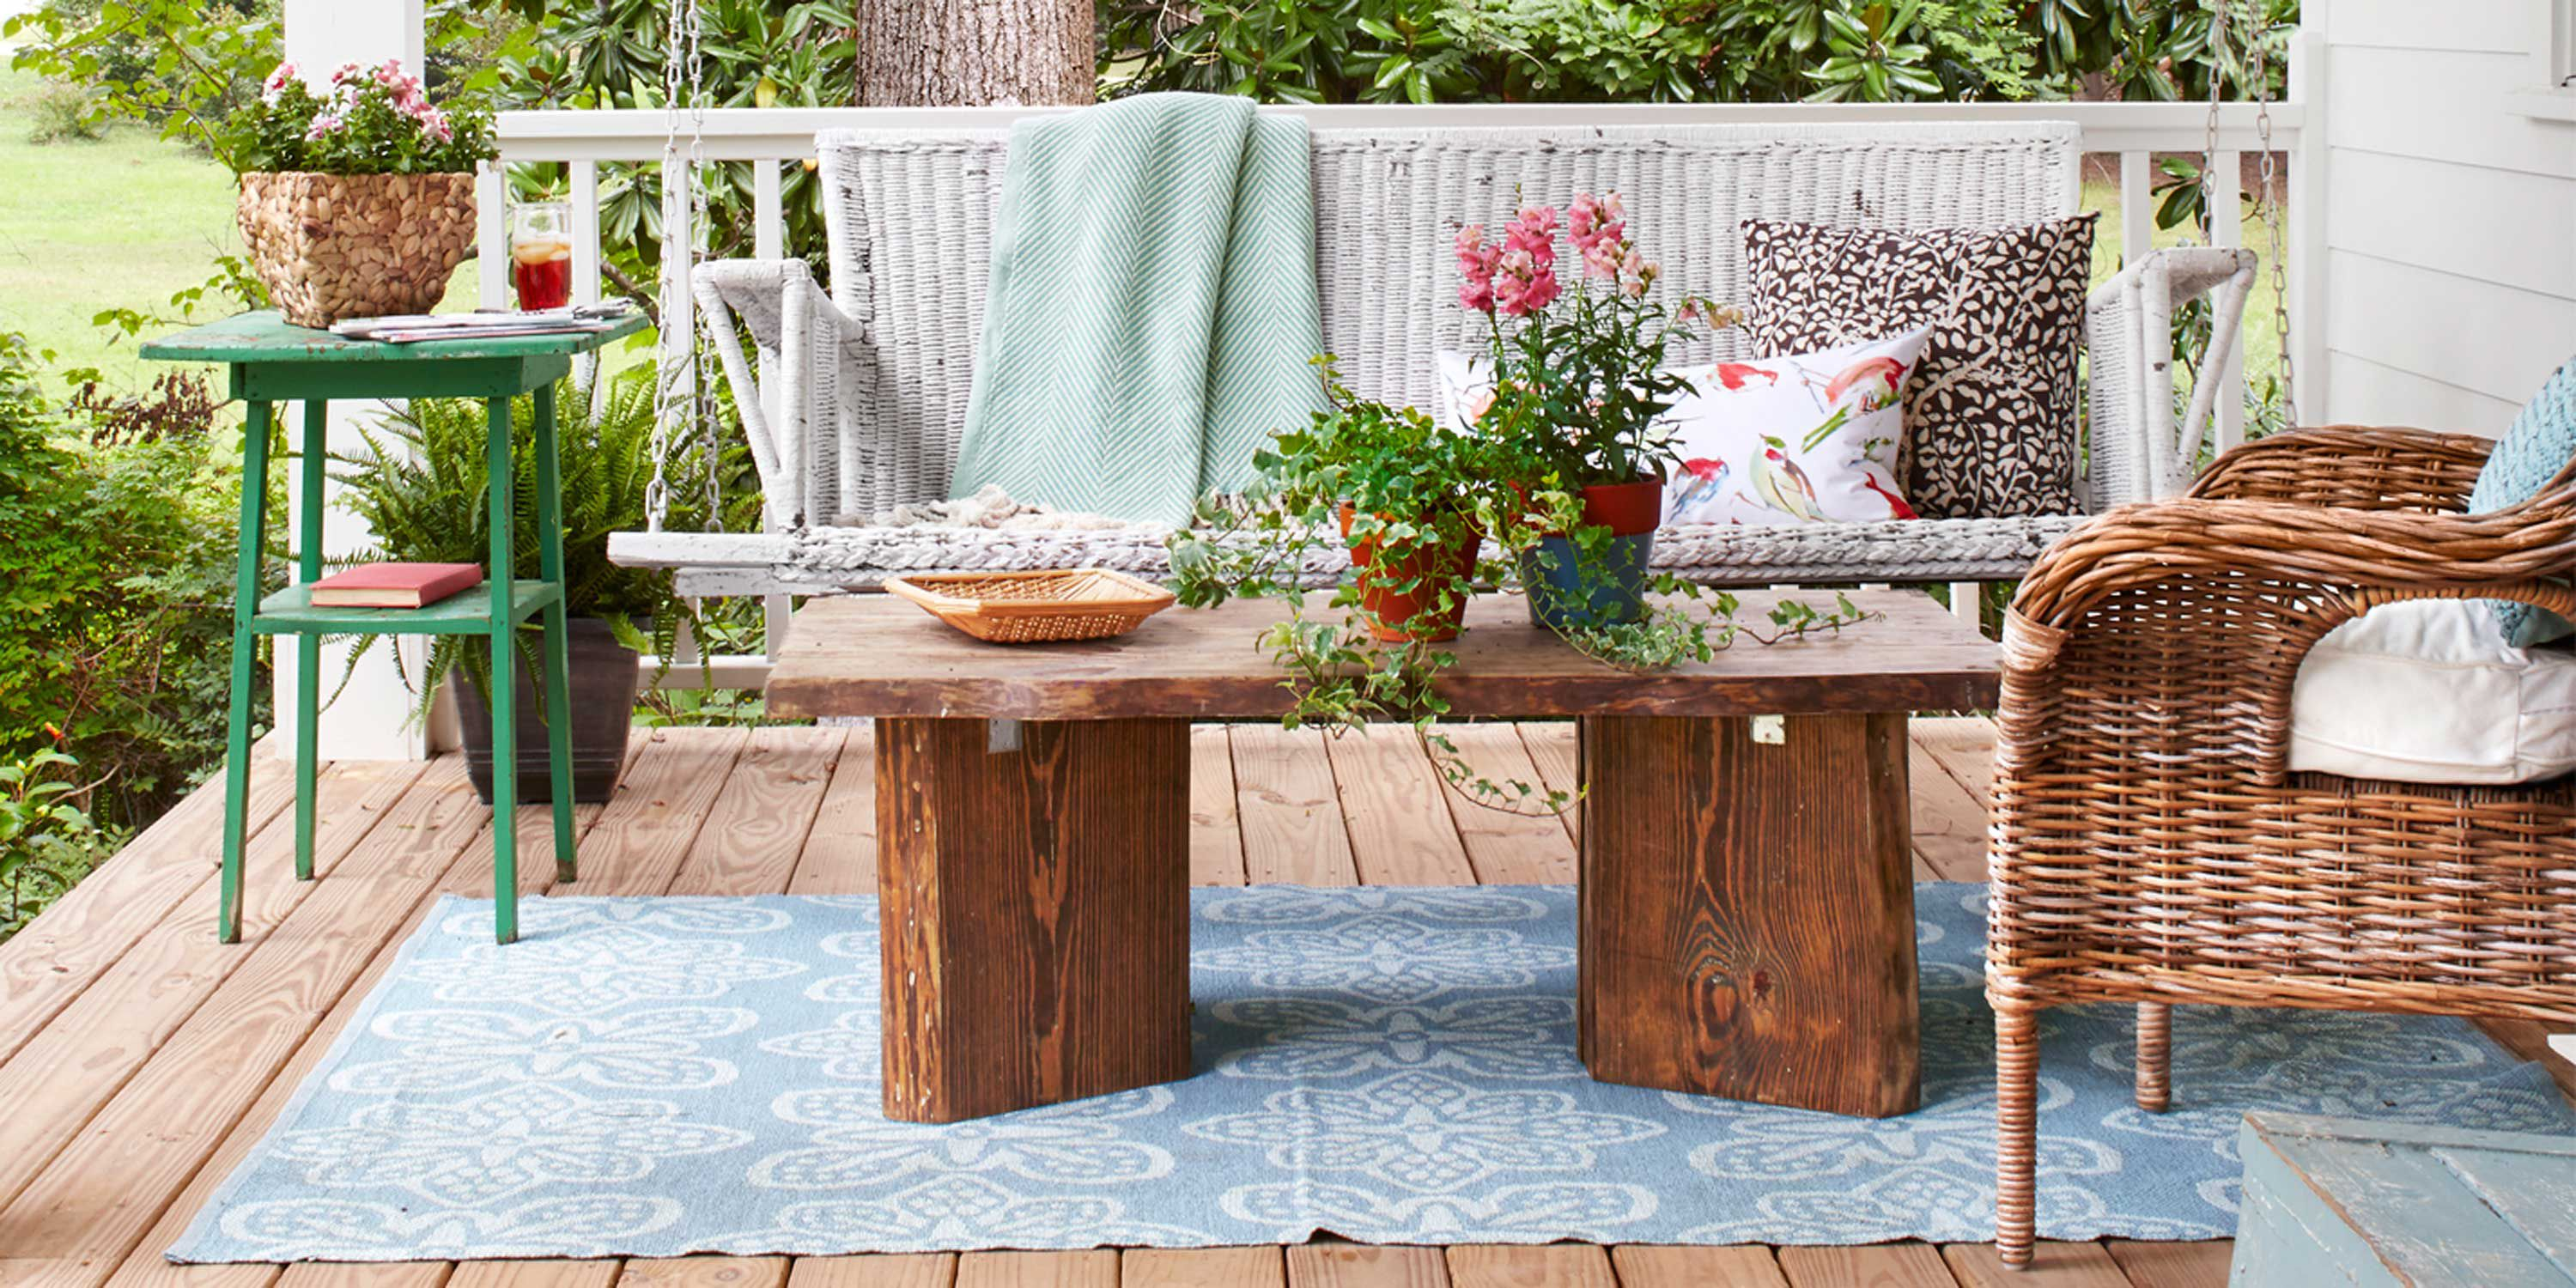 60+ Best Patio Designs for 2019 - Ideas for Front Porch and Patio Decorating